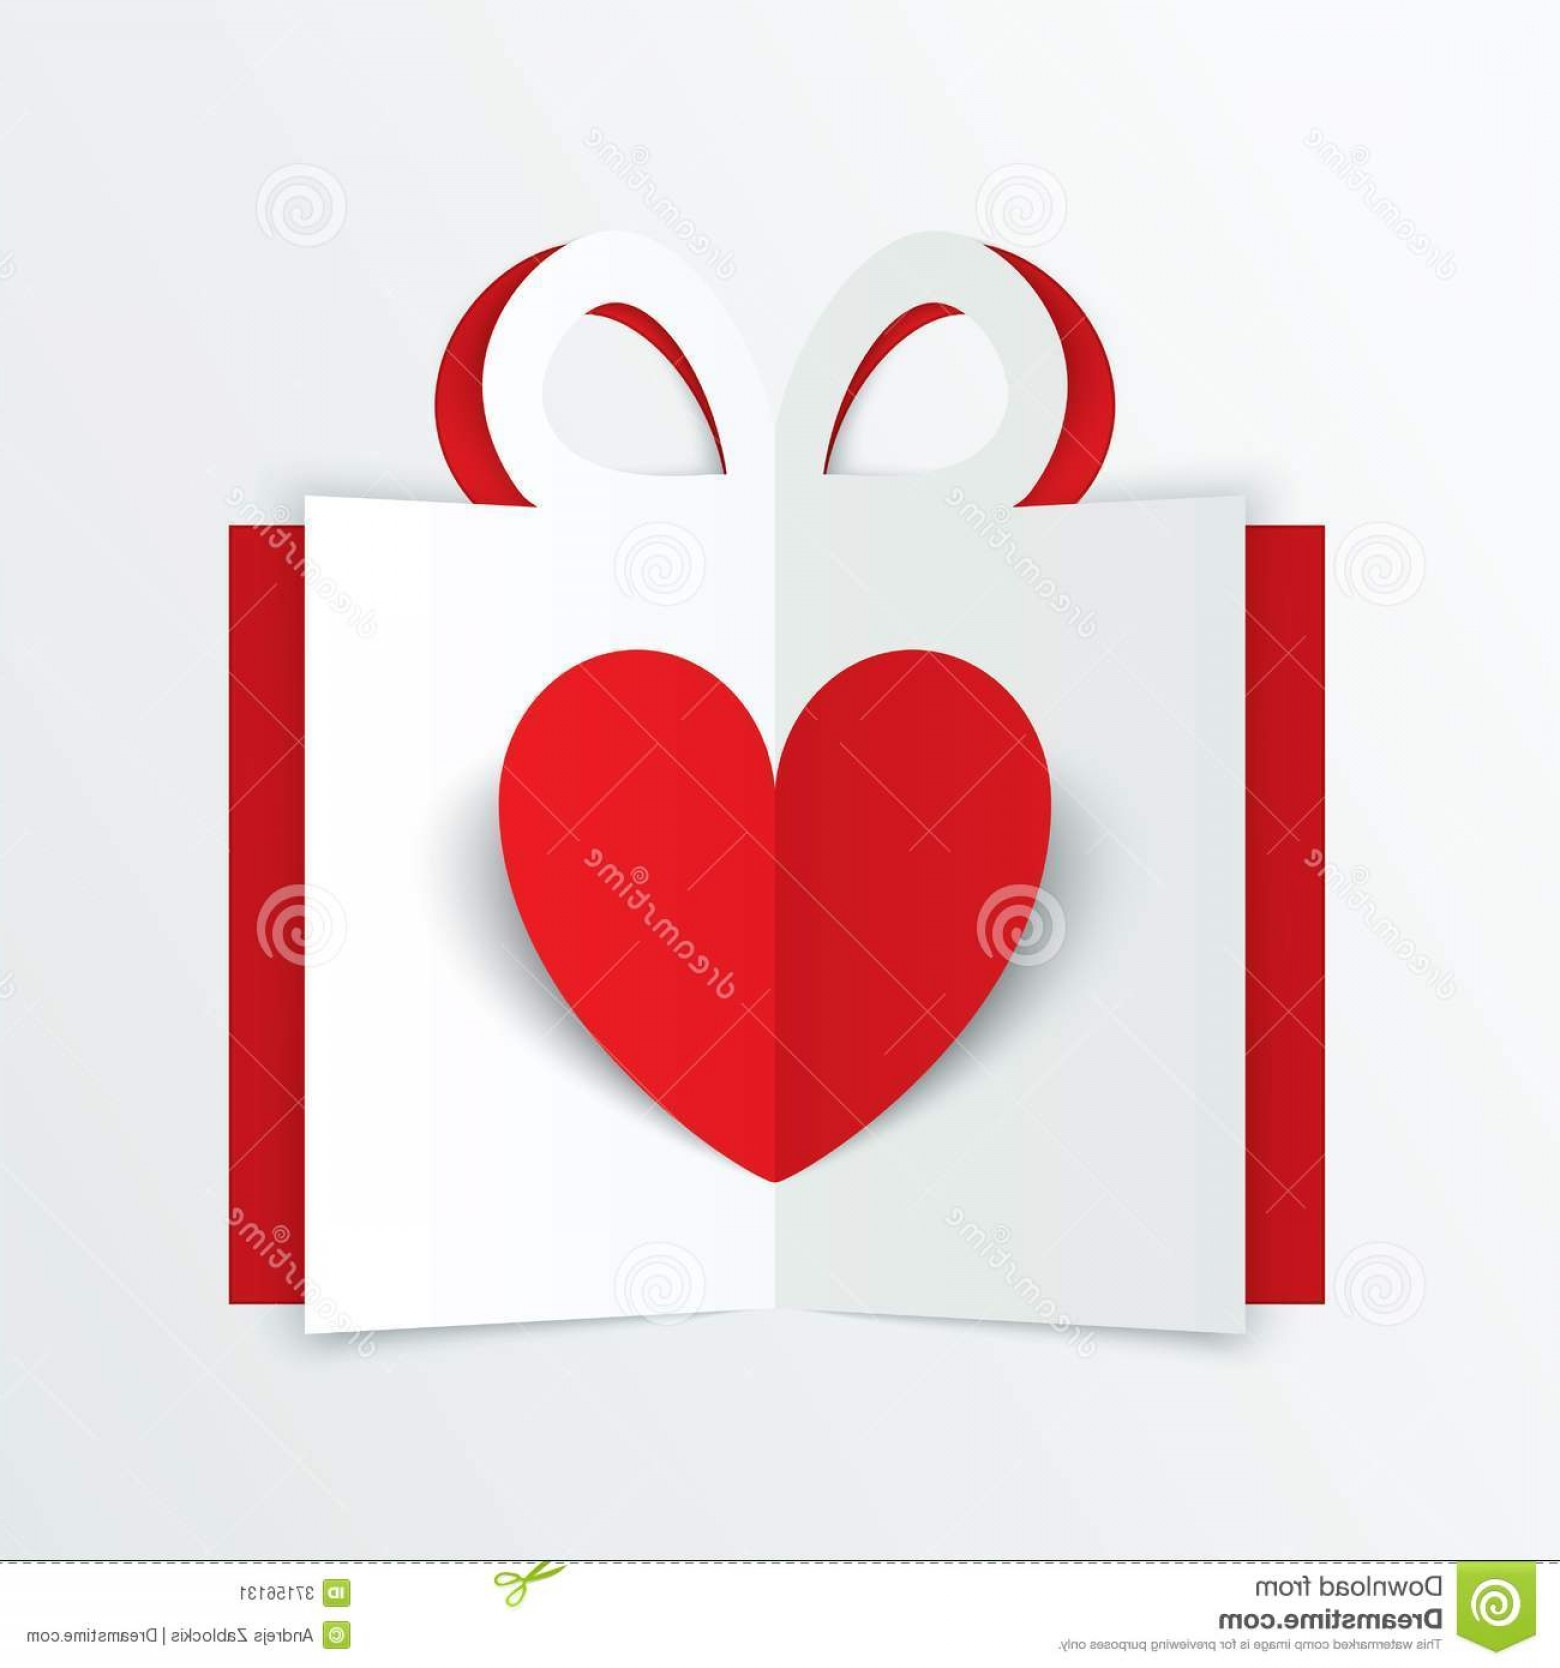 Heart Card Vector: Stock Image Red Paper Heart Gift Box Valentines Day Card White Background Cut Vector Illustration Image